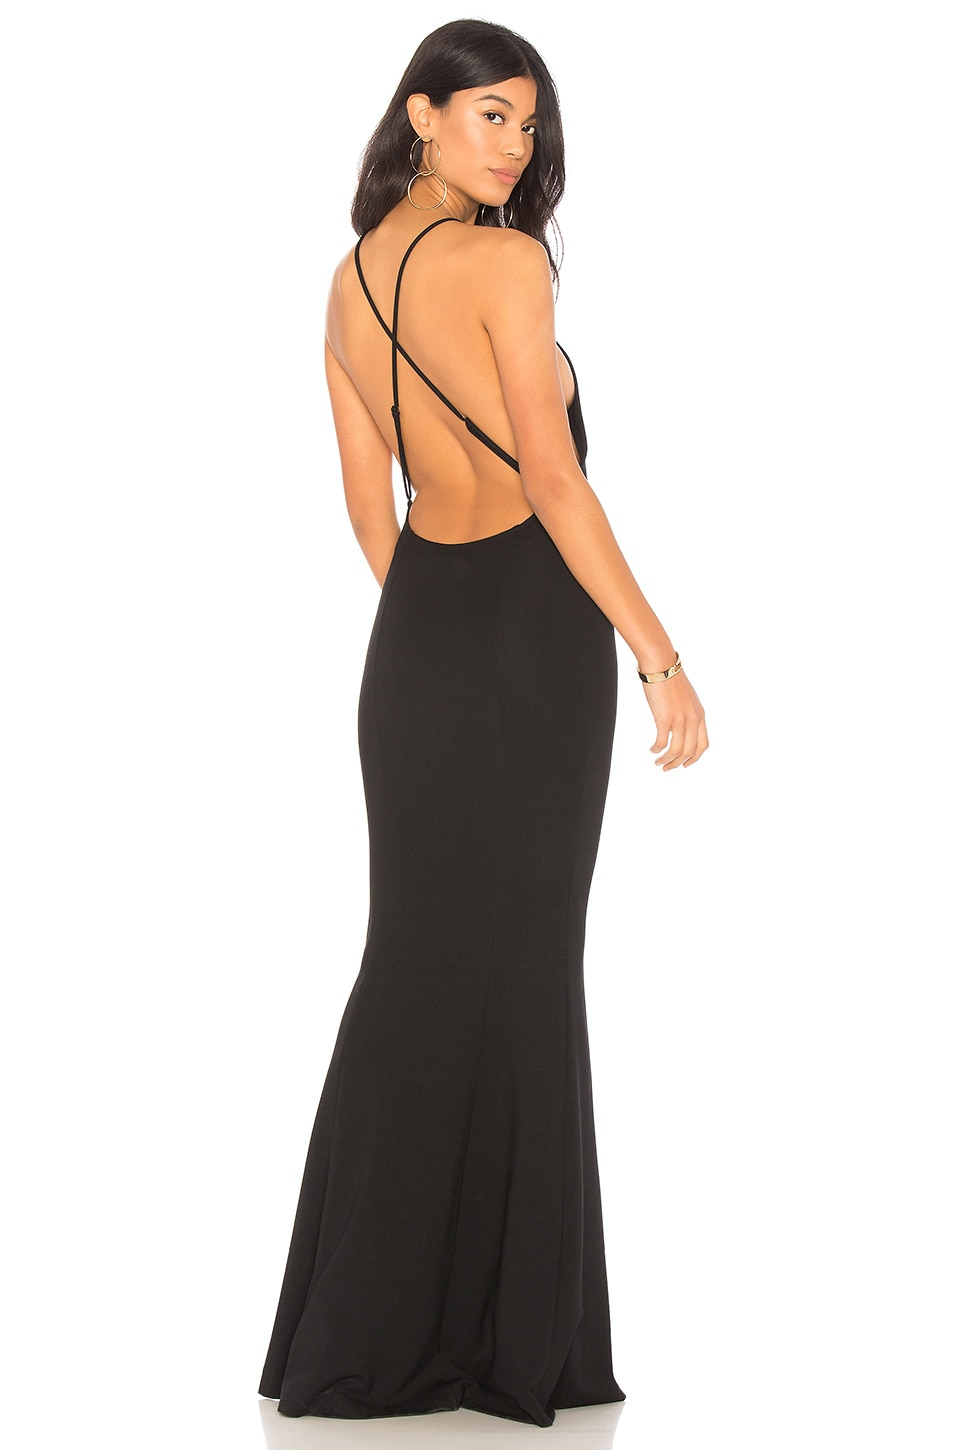 x REVOLVE Jet Fleet Maxi by Chrissy Teigen